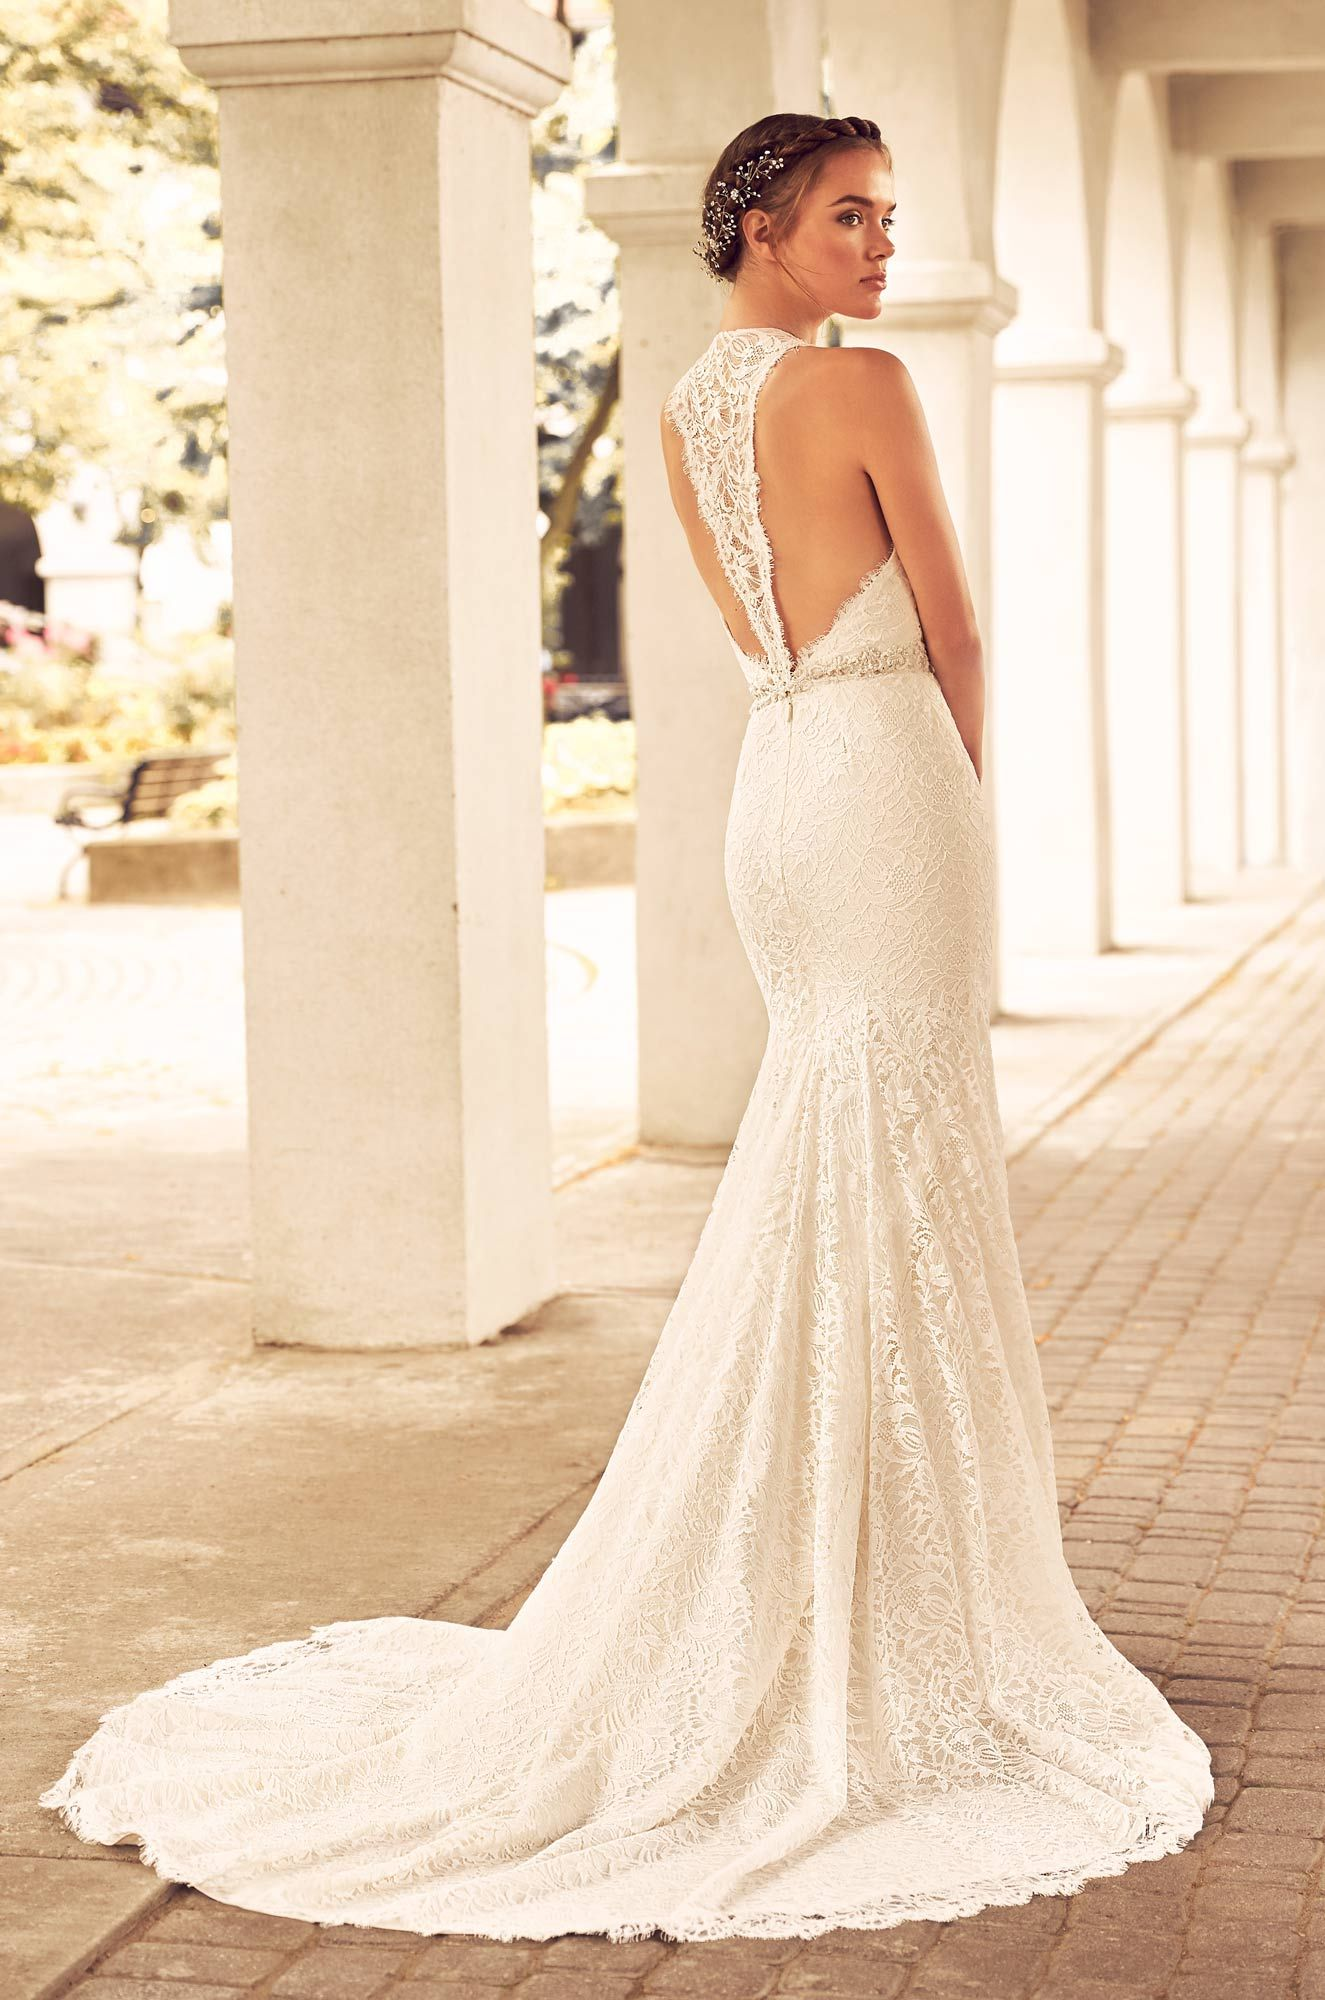 Full Wedding Dress Collection Paloma Blanca Racerback Wedding Dress Wedding Dresses For Girls Wedding Dress Styles